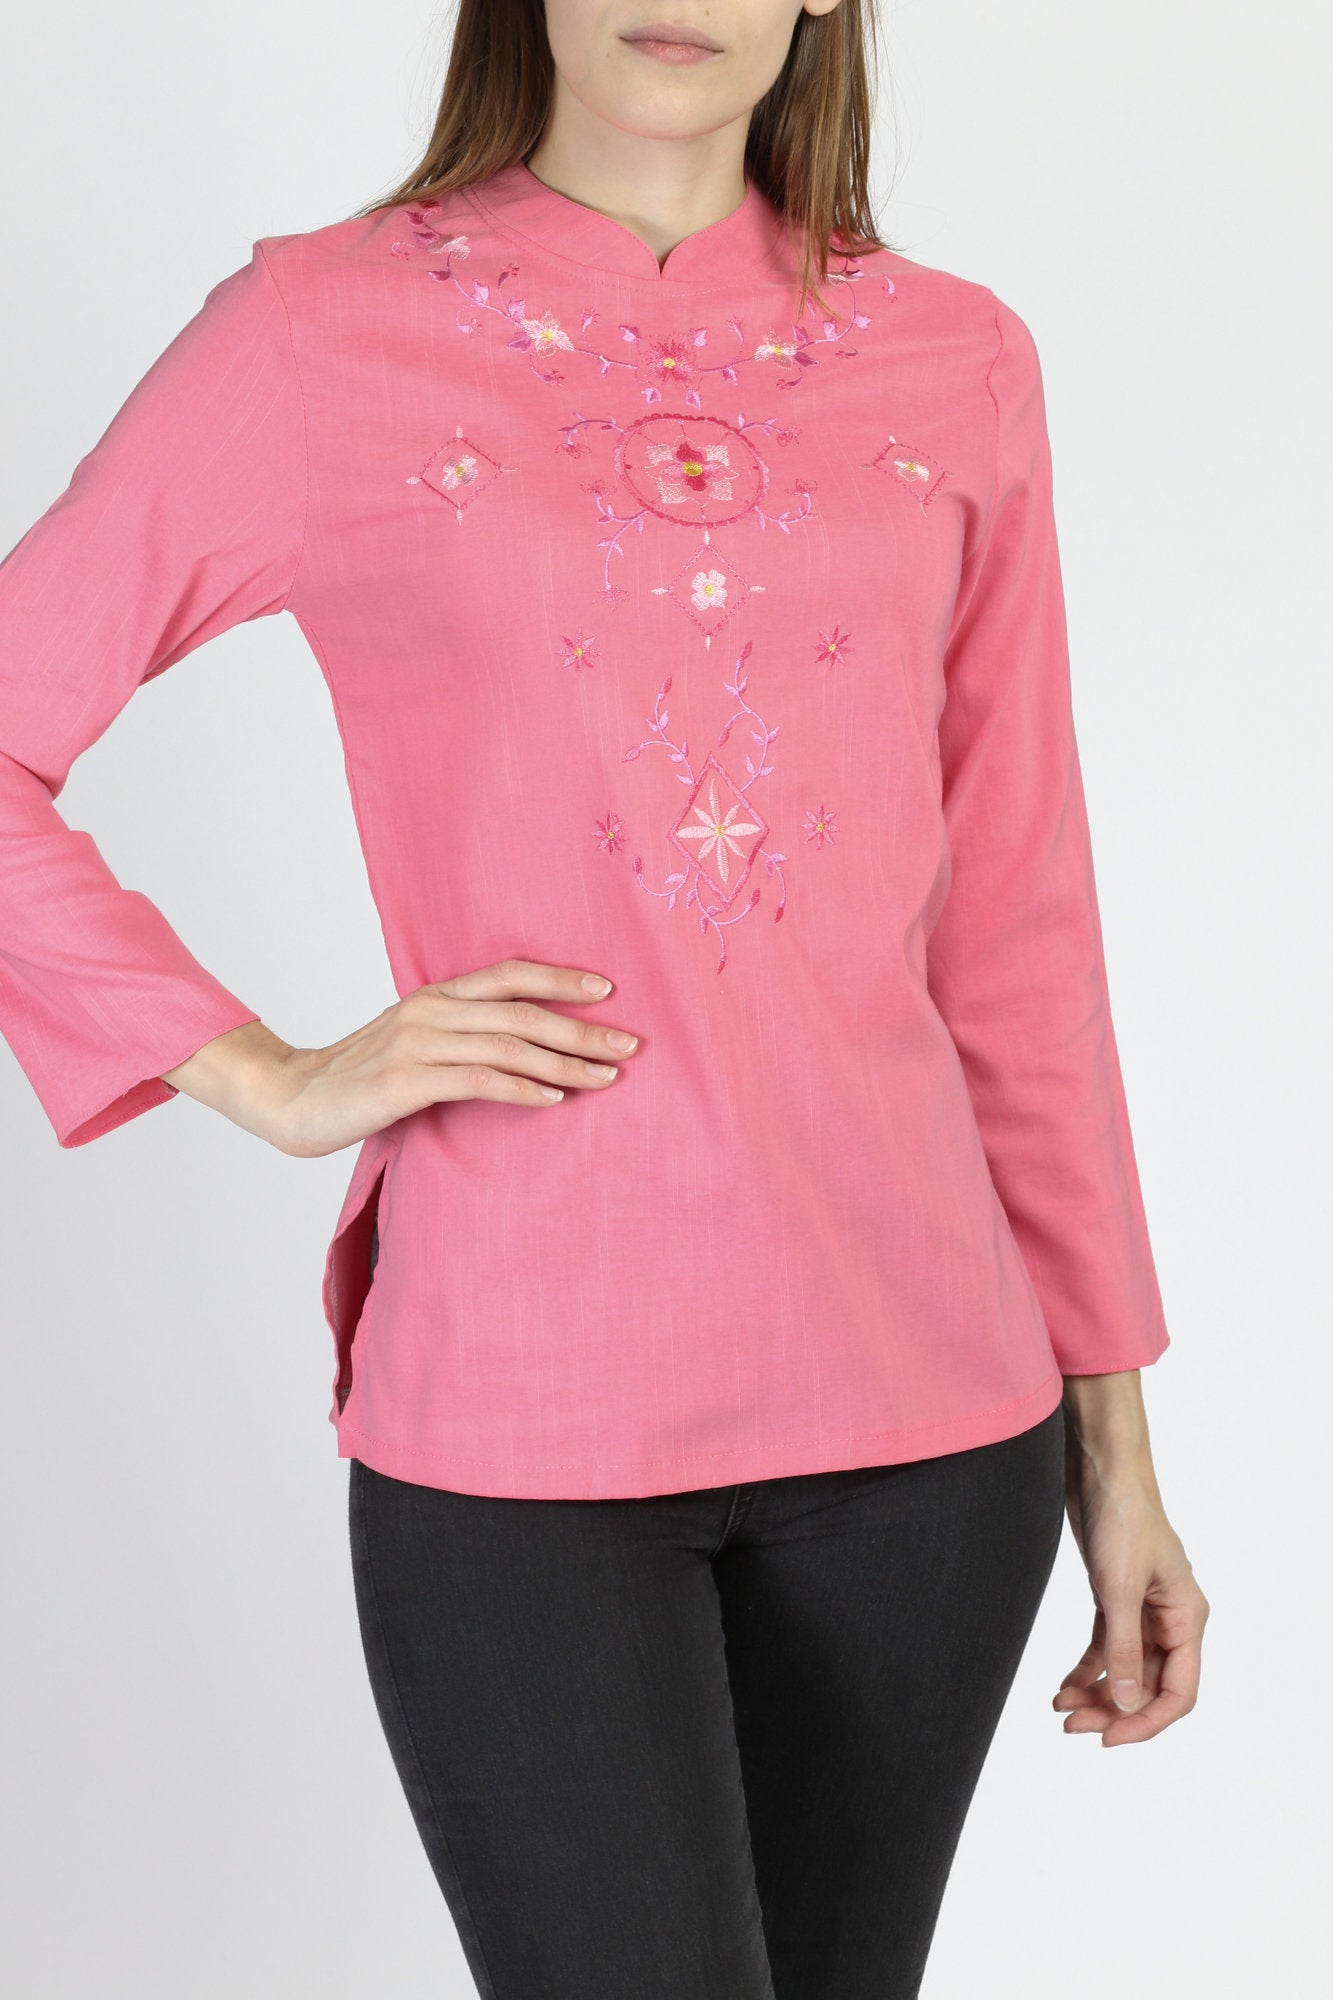 Vintage Pink Embroidered Floral Nehru Collar Blouse - Small